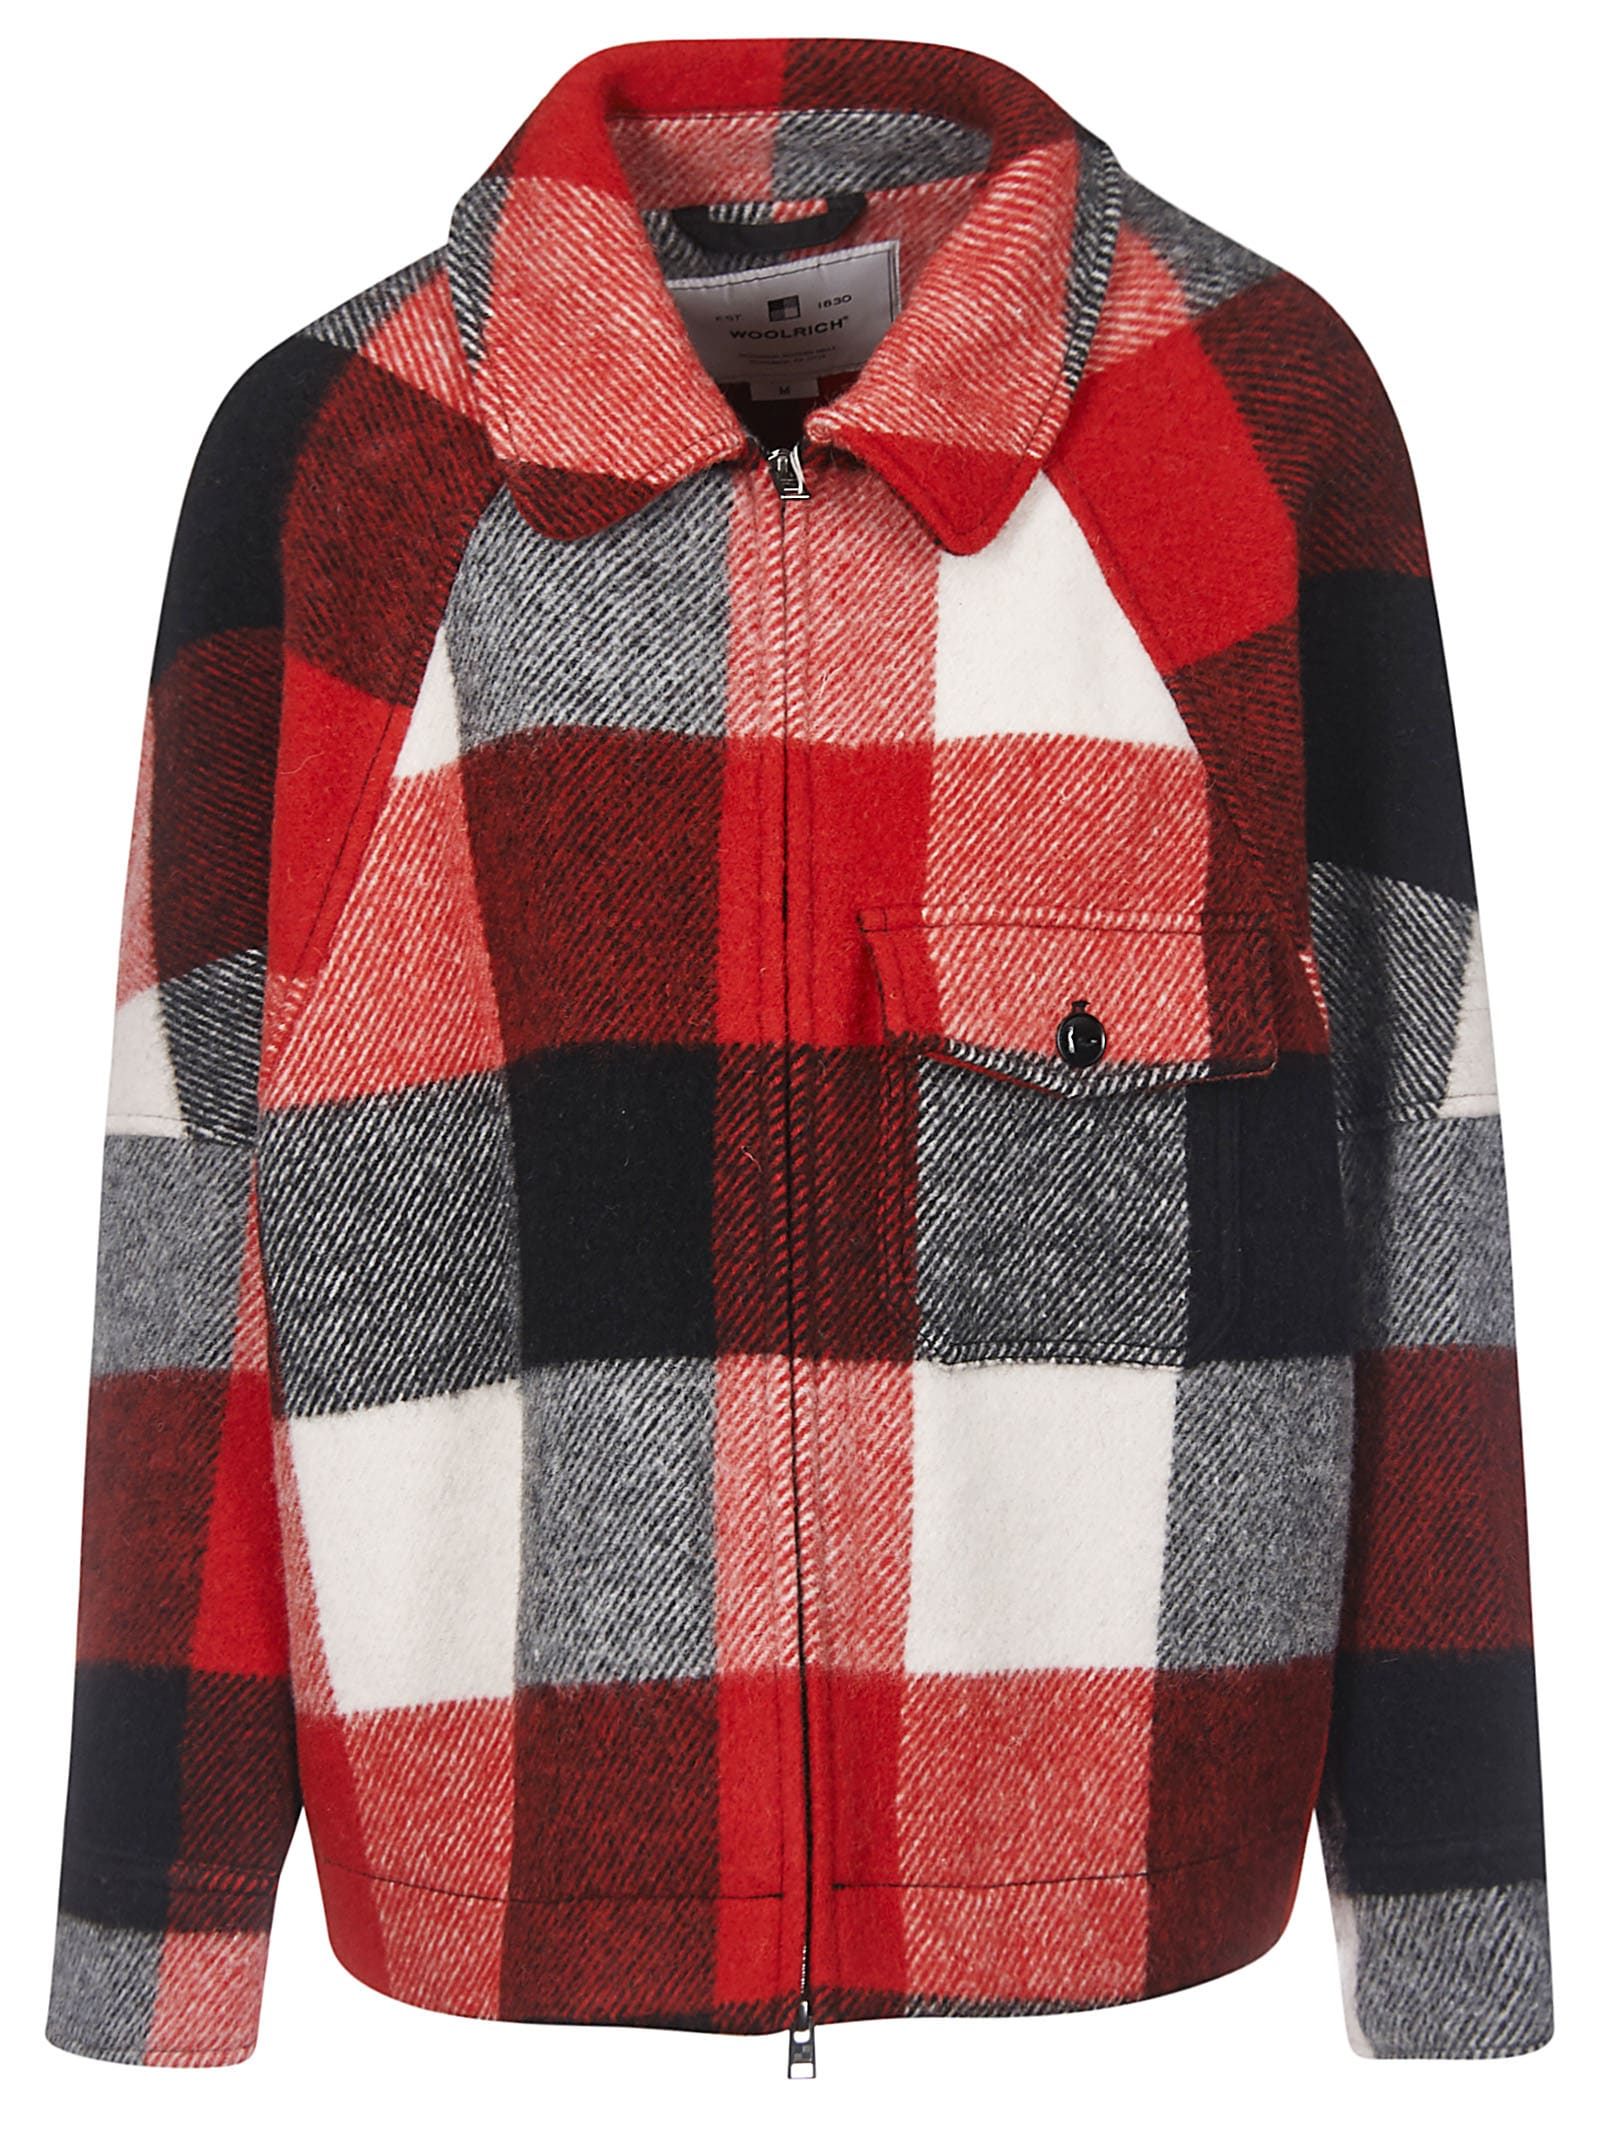 Woolrich Checked Jacket